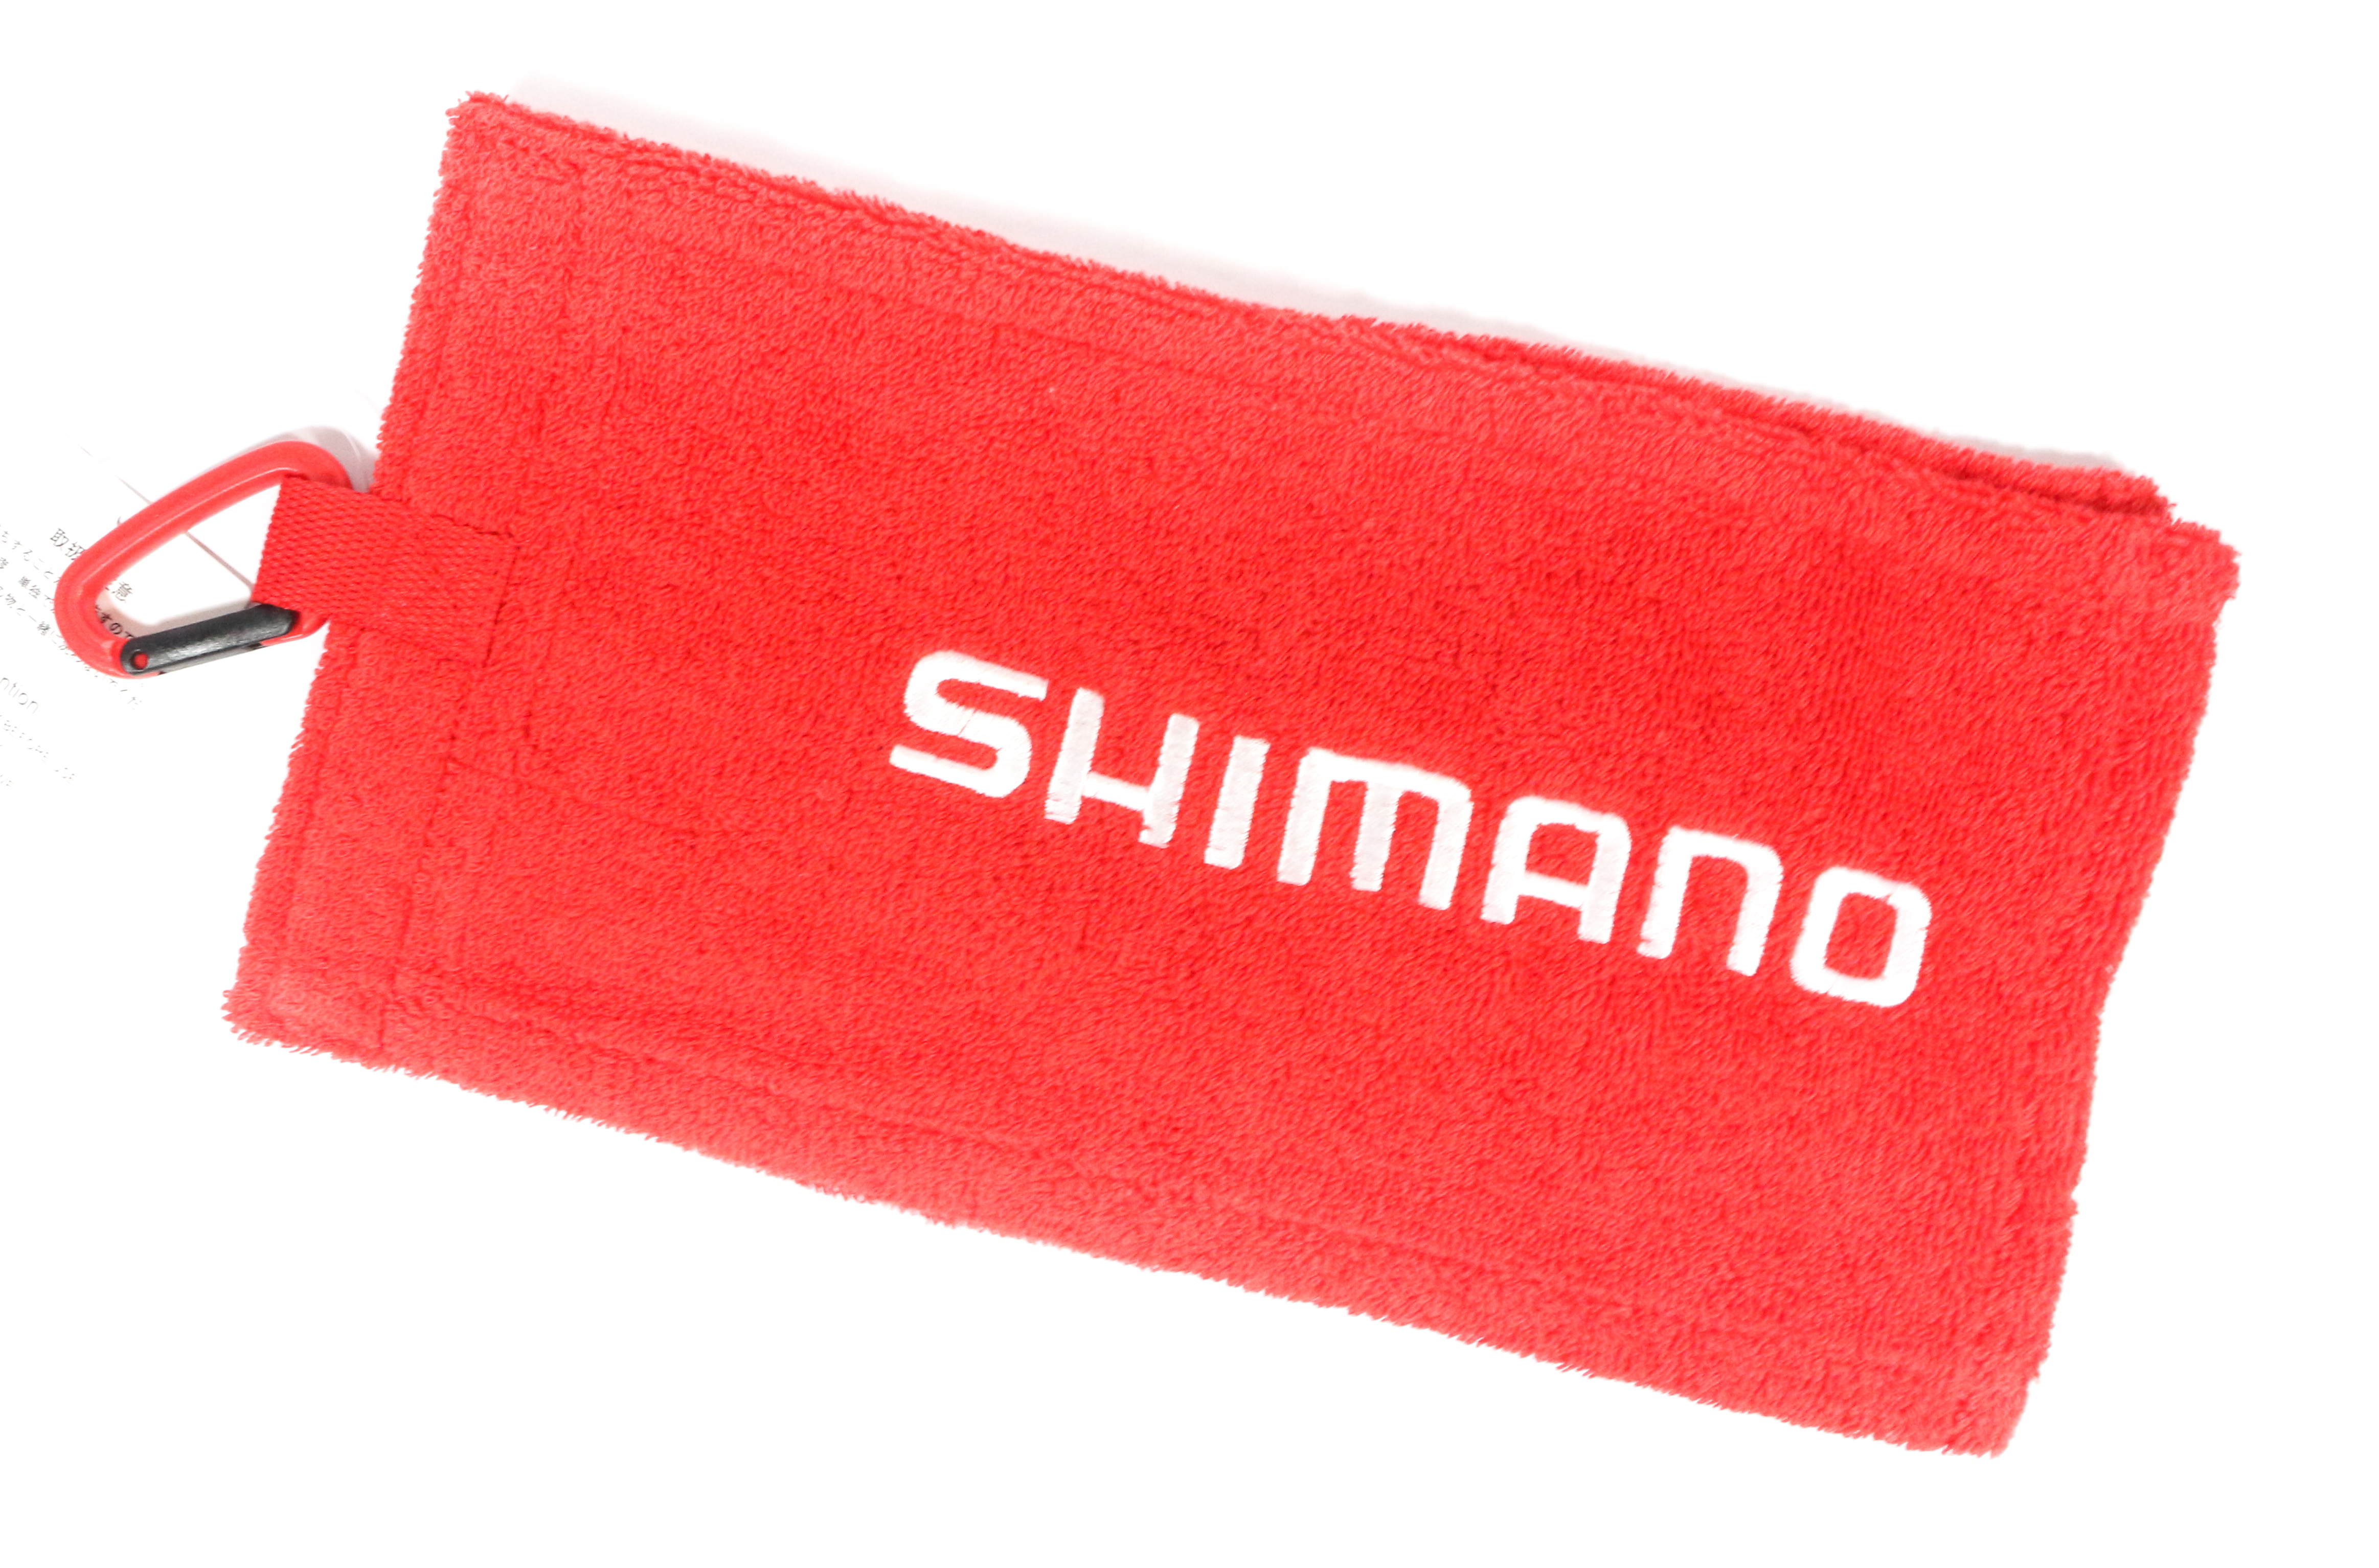 Shimano AC-060P Clip on Fishing Hand Towel Fireblood 60 x 15 cm Red 451941